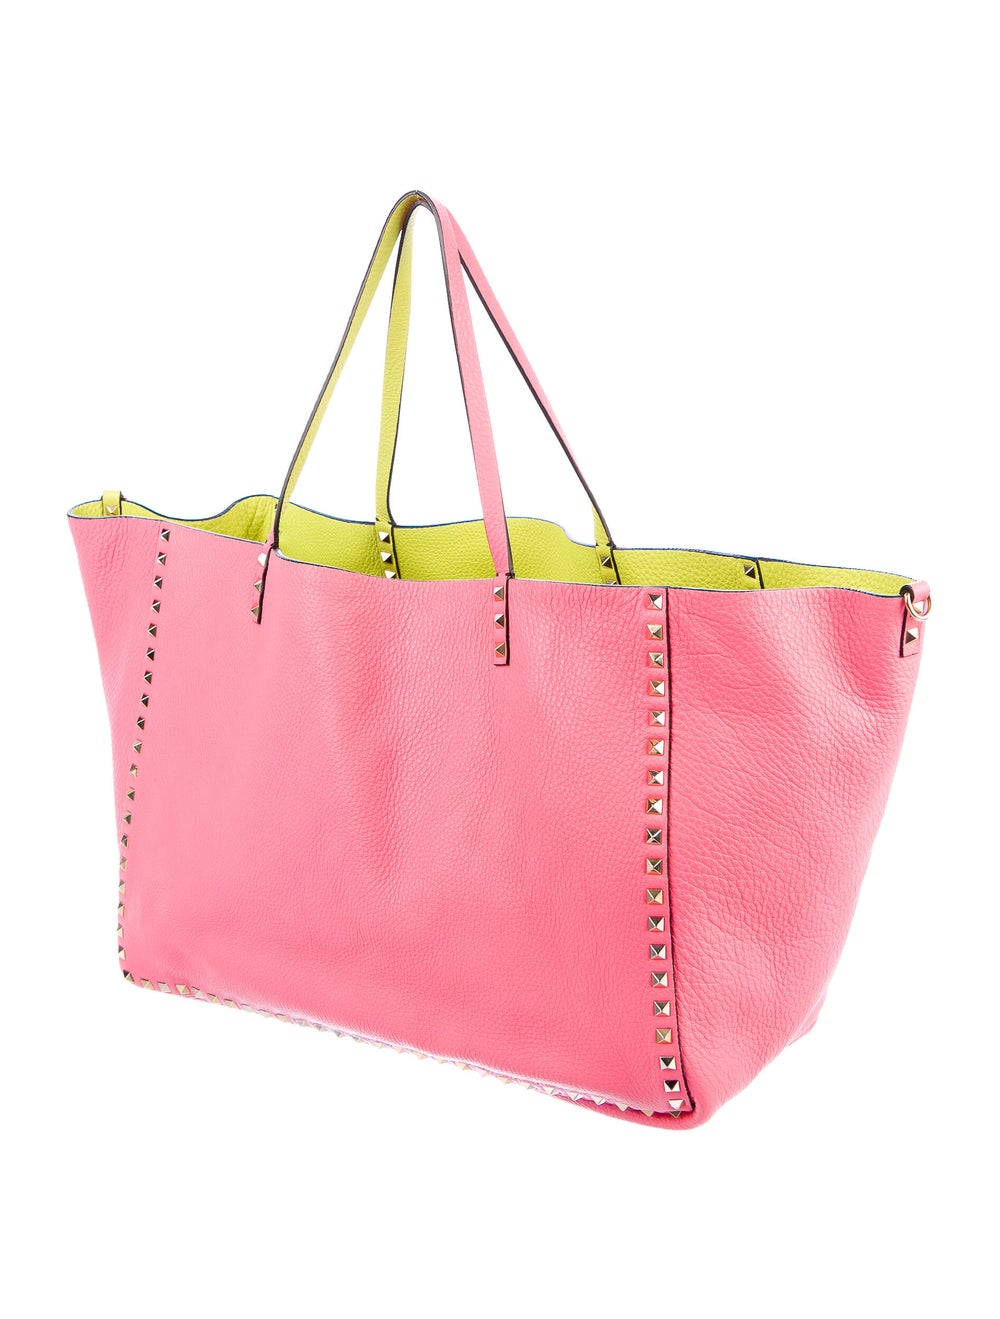 Valentino Leather Rockstud Tote Pink - image 3